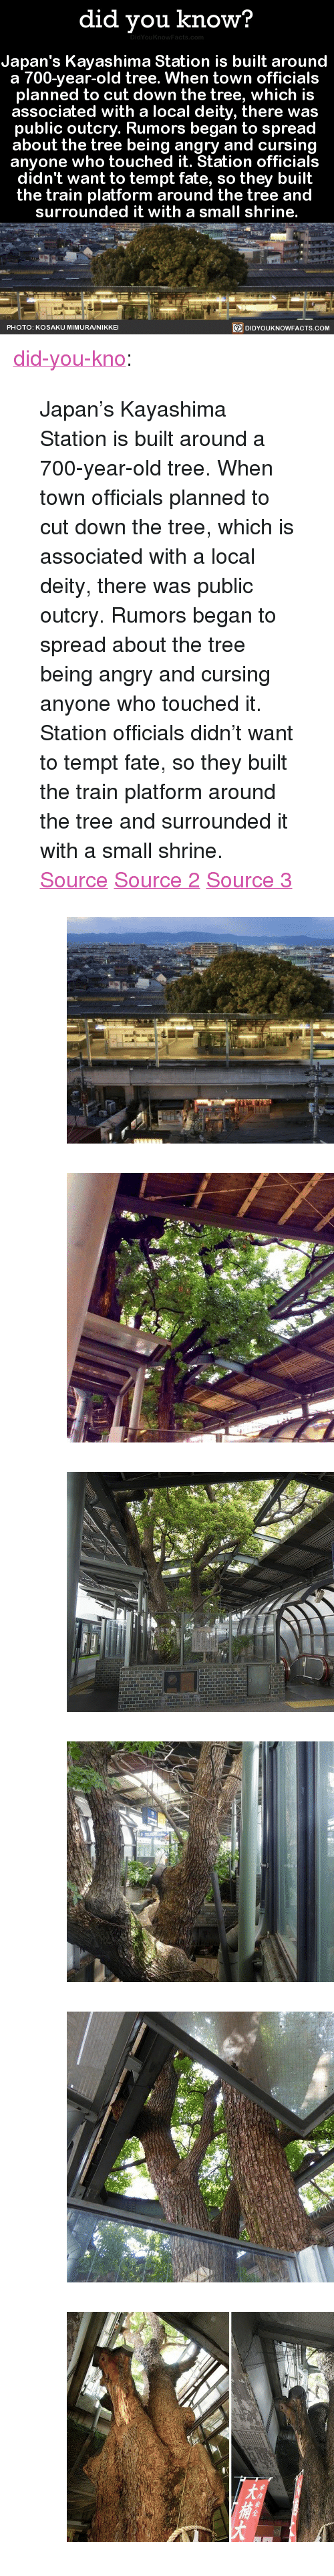 "Deity: did you know?  Japan's Kayashima Station is built around  a 700-vear-old tree. When town officials  planned to cut down the tree, which is  associated with a local deity, there was  public outcry. Rumors began to spread  about the tree being angry and cursin  anyone who touched it. Station officials  didn't want to tempt fate, so they built  the train platform around the tree and  surrounded it with a small shrine.  PHOTO: KOSAKU MIMURA/NIKKE  DIDYOUKNOWFACTS.CoM <p><a href=""http://didyouknowblog.com/post/158719101556/japans-kayashima-station-is-built-around-a"" class=""tumblr_blog"">did-you-kno</a>:</p> <blockquote> <p>Japan's Kayashima Station is built around  a 700-year-old tree. When town officials  planned to cut down the tree, which is  associated with a local deity, there was  public outcry. Rumors began to spread  about the tree being angry and cursing  anyone who touched it. Station officials  didn't want to tempt fate, so they built  the train platform around the tree and  surrounded it with a small shrine.  <a href=""http://www.spoon-tamago.com/2017/01/21/kayashima-the-japanese-train-station-built-around-a-700-year-old-tree/"">Source</a> <a href=""http://mymodernmet.com/kayashima-station-camphor-tree/"">Source 2</a> <a href=""http://www.atlasobscura.com/places/kayashima-station"">Source 3</a></p> <figure class=""tmblr-full"" data-orig-height=""339"" data-orig-width=""540""><img src=""https://78.media.tumblr.com/6db5d29da101ddfaf26022f04de5b681/tumblr_inline_on74fjj7621uy8wg3_540.jpg"" data-orig-height=""339"" data-orig-width=""540""/></figure><figure class=""tmblr-full"" data-orig-height=""403"" data-orig-width=""540""><img src=""https://78.media.tumblr.com/add8874ad450eeefd38d59773a5c0daf/tumblr_inline_on74fjyMYv1uy8wg3_540.jpg"" data-orig-height=""403"" data-orig-width=""540""/></figure><figure class=""tmblr-full"" data-orig-height=""359"" data-orig-width=""540""><img src=""https://78.media.tumblr.com/6884871ae50eed2103c666942ea81536/tumblr_inline_on74fkVp341uy8wg3_540.jpg"" data-orig-height=""359"" data-orig-width=""540""/></figure><figure class=""tmblr-full"" data-orig-height=""360"" data-orig-width=""540""><img src=""https://78.media.tumblr.com/84109a84e6f3c7e208adb9314d02d7de/tumblr_inline_on74fl3g3T1uy8wg3_540.jpg"" data-orig-height=""360"" data-orig-width=""540""/></figure><figure class=""tmblr-full"" data-orig-height=""405"" data-orig-width=""540""><img src=""https://78.media.tumblr.com/bda0bdb89828a2c1f0f0b311be9af4a7/tumblr_inline_on74flgra11uy8wg3_540.jpg"" data-orig-height=""405"" data-orig-width=""540""/></figure><figure class=""tmblr-full"" data-orig-height=""344"" data-orig-width=""540""><img src=""https://78.media.tumblr.com/6dfa91addc768a5c8211dcb55d7f6a3e/tumblr_inline_on74fmKFrz1uy8wg3_540.jpg"" data-orig-height=""344"" data-orig-width=""540""/></figure></blockquote>"